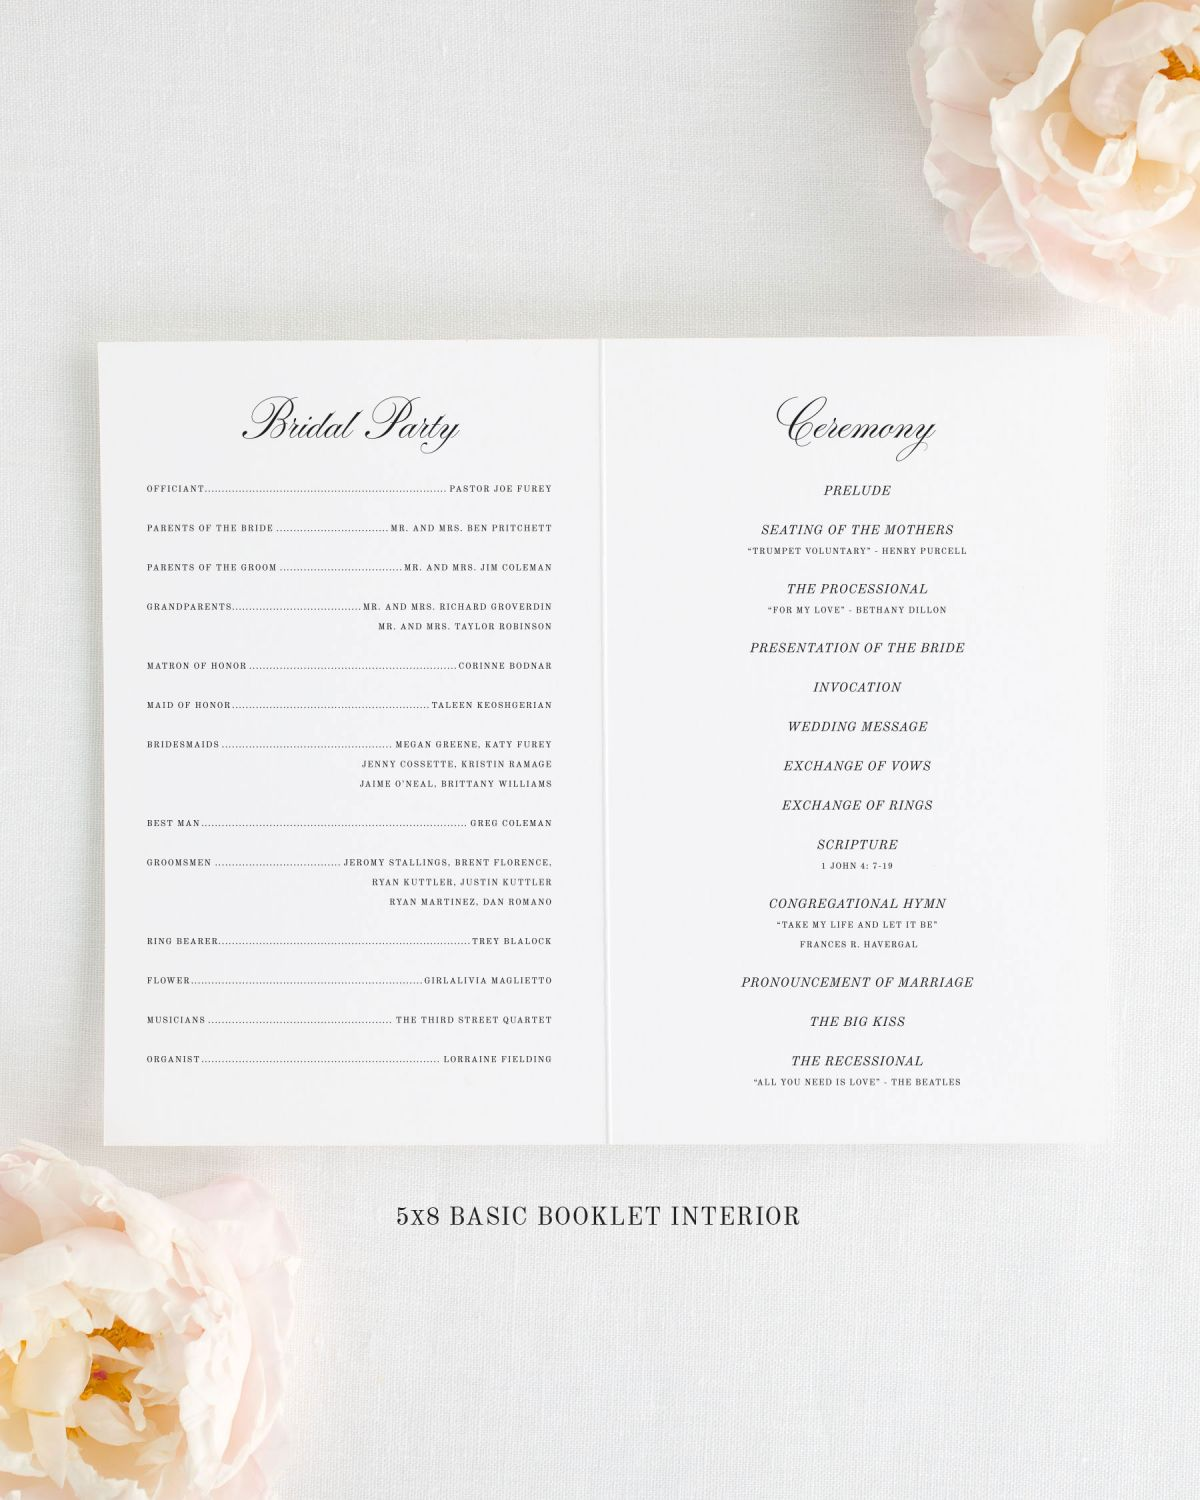 5x8 Wedding Programs Interior